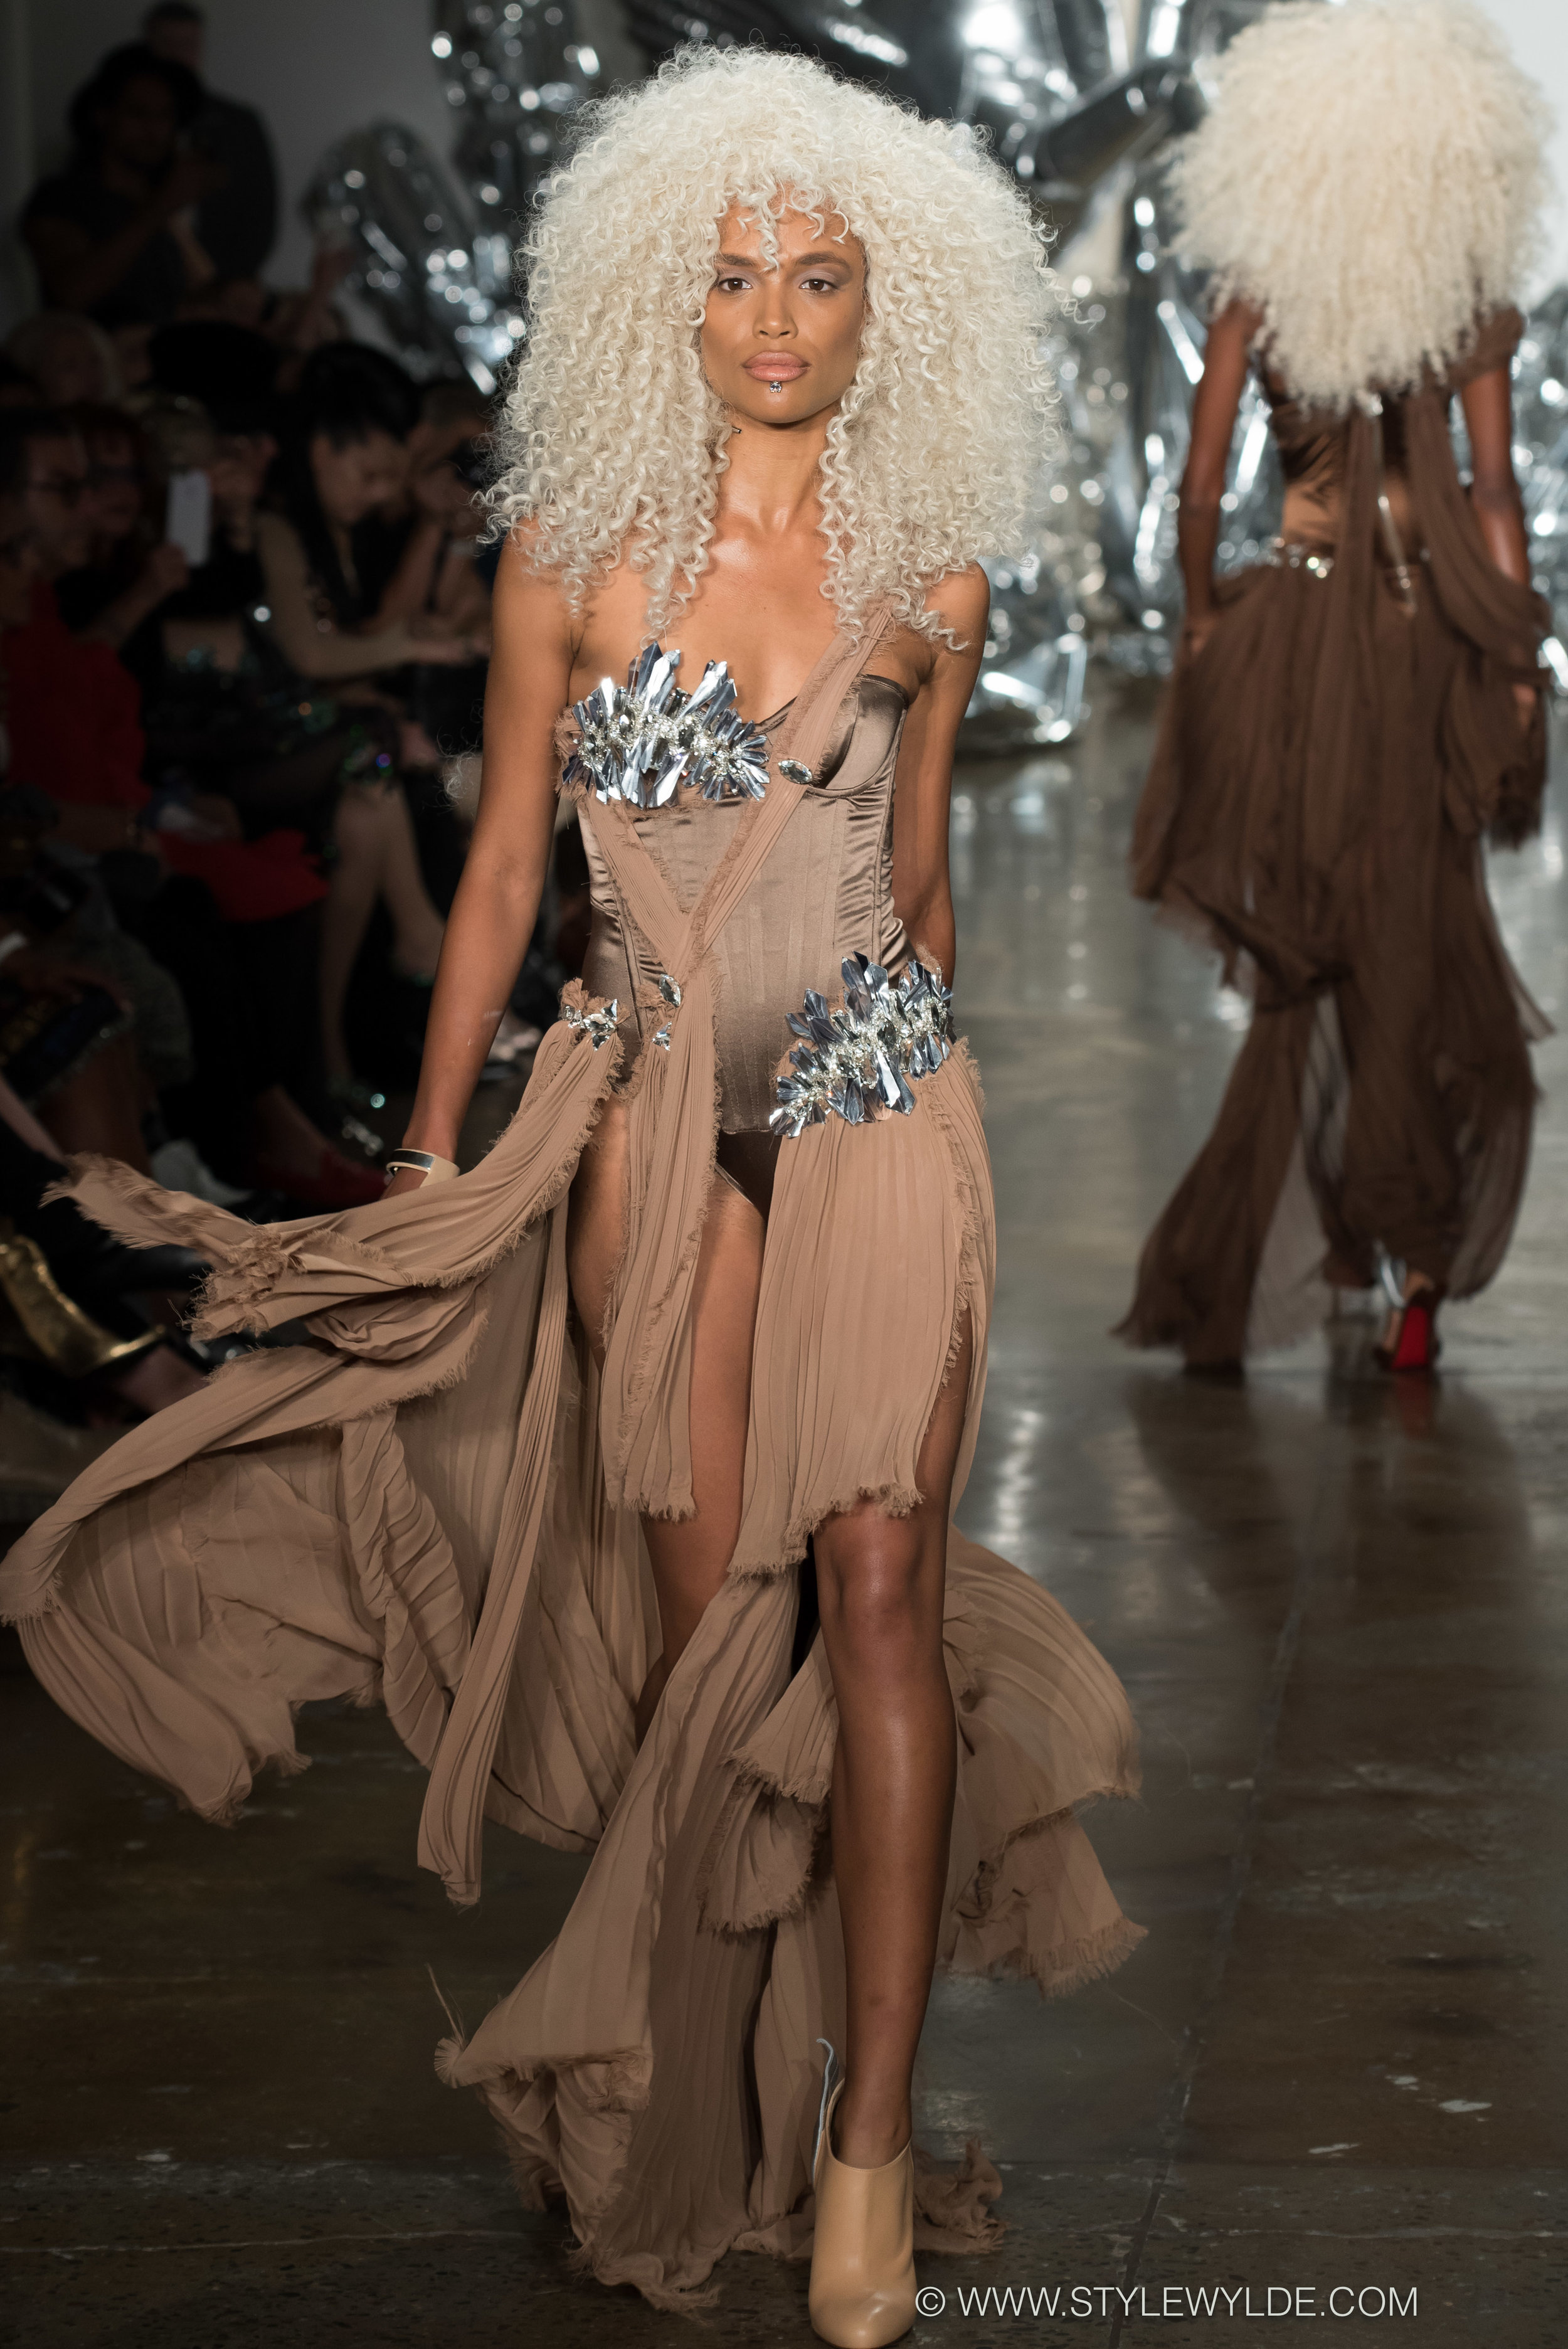 stylewylde-The Blonds SS17-FOH- Edits-7.jpg